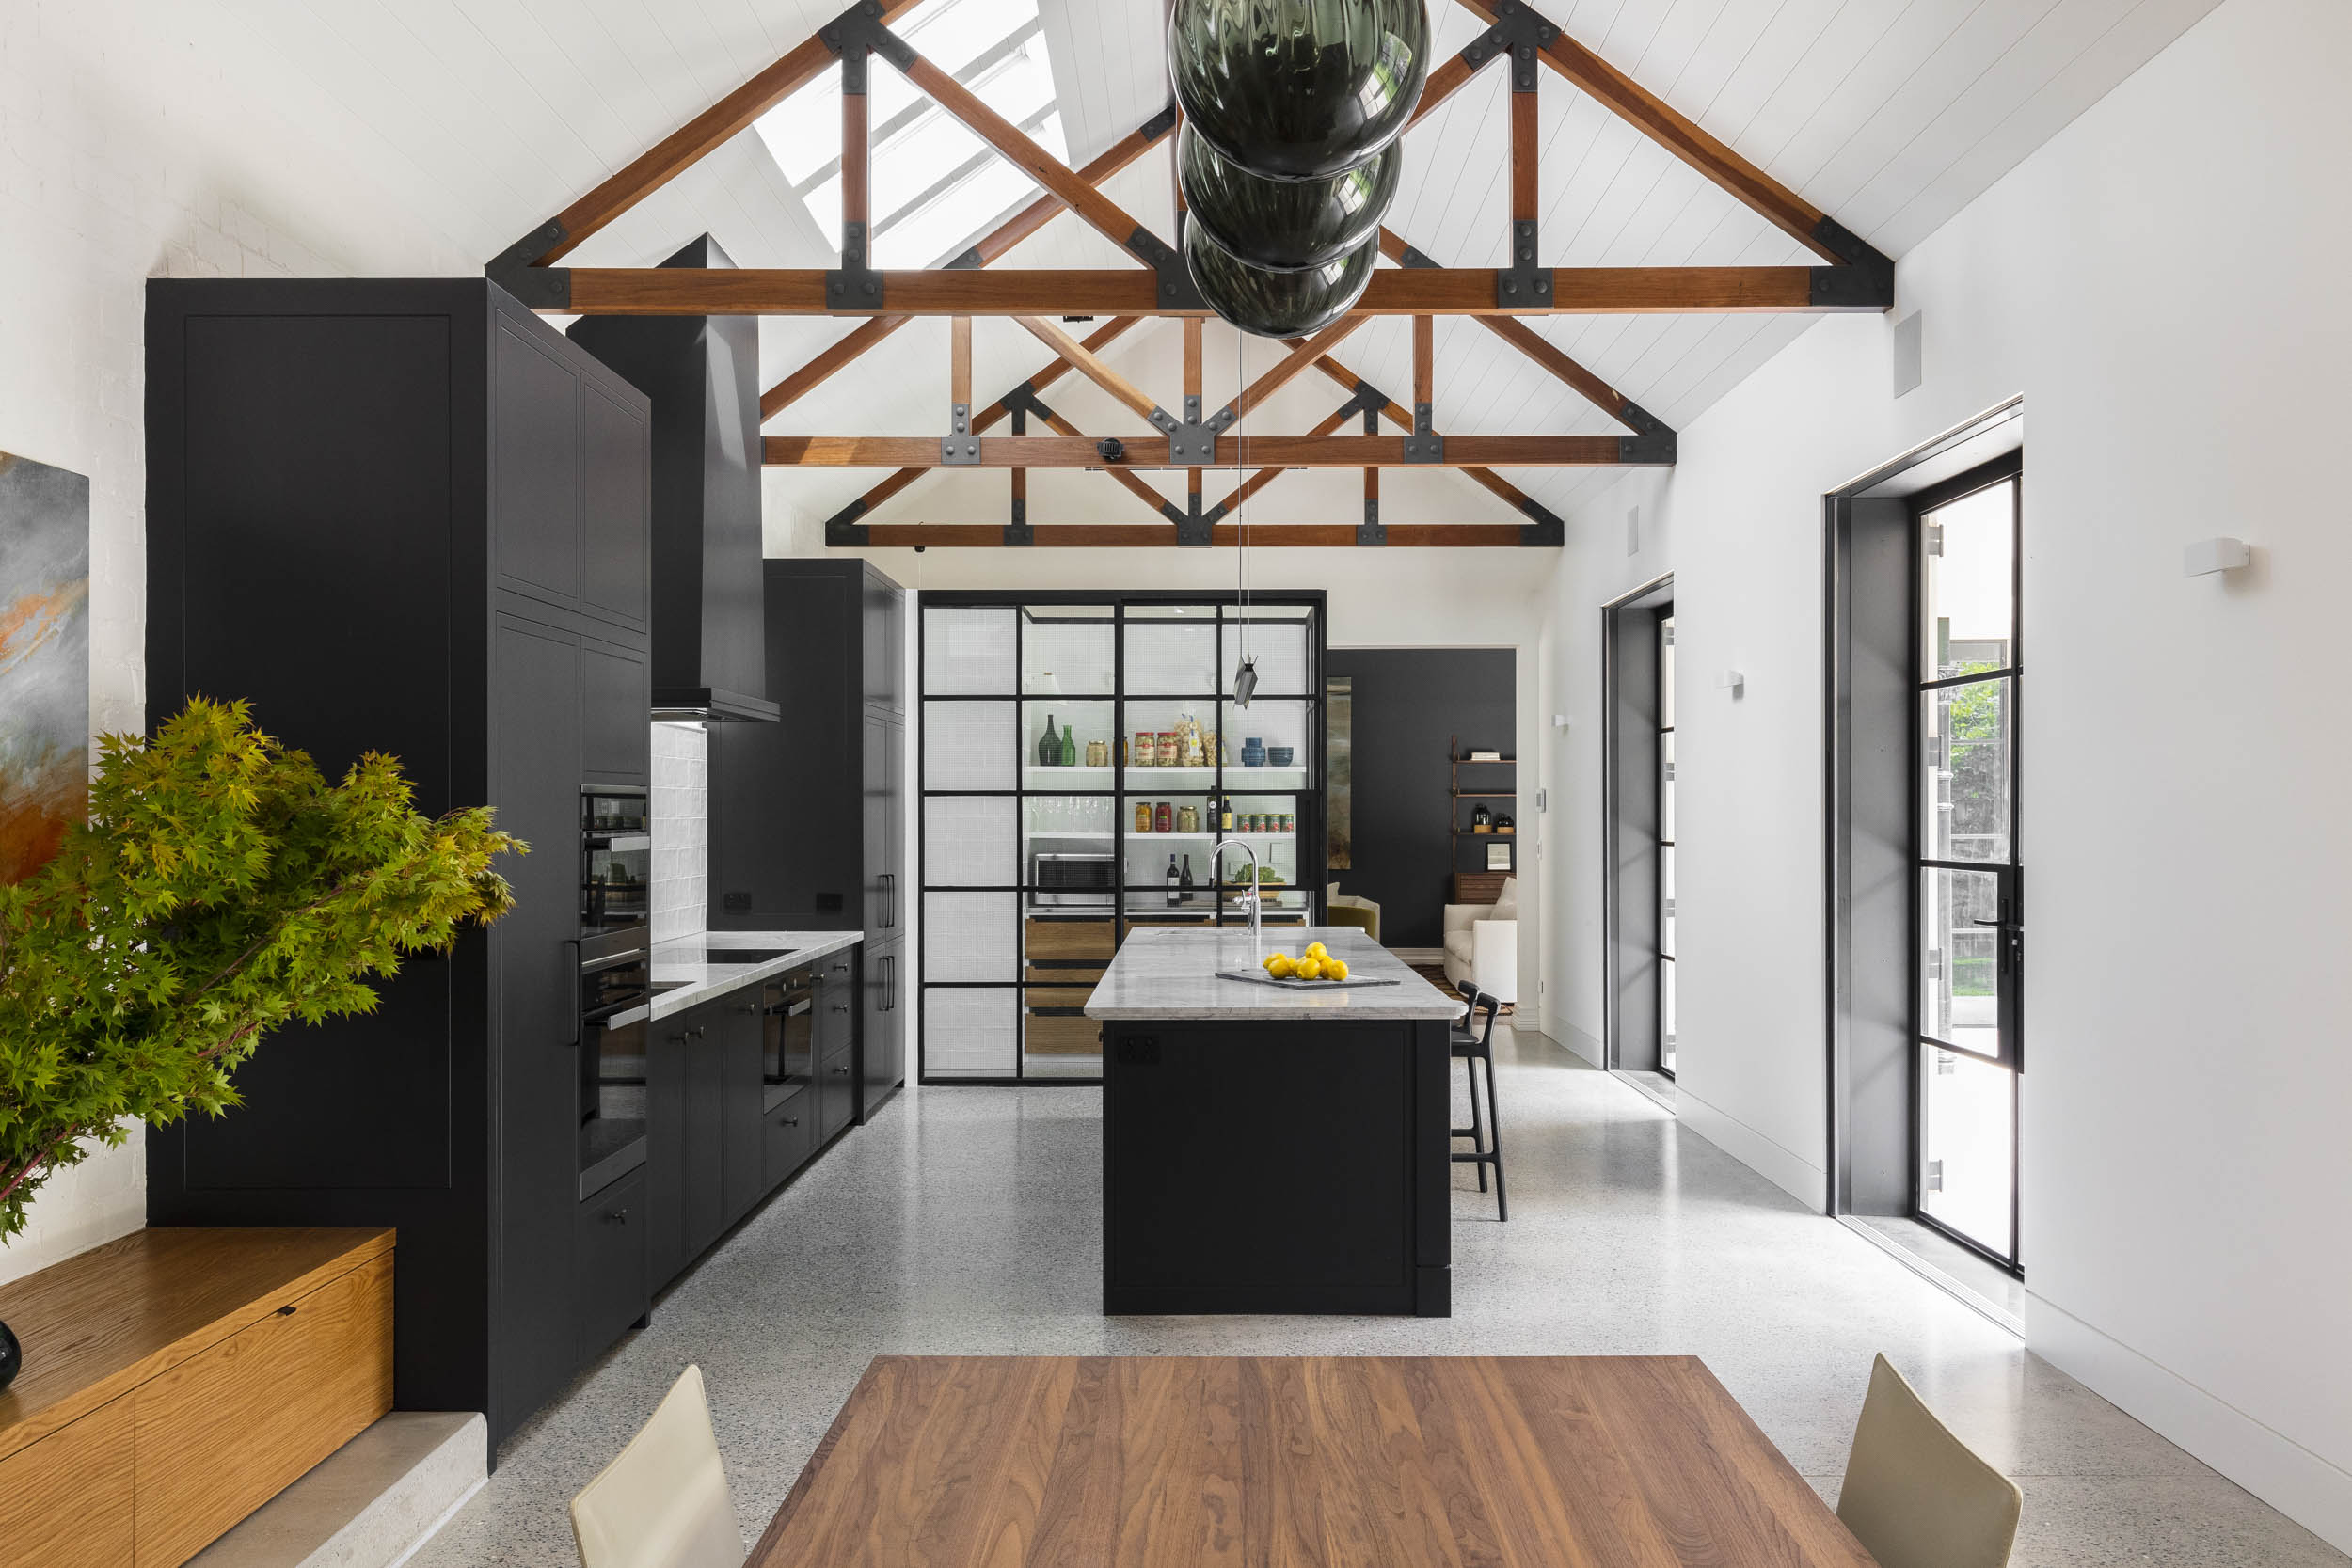 Darlinghurst House interiors by Arent & Pyke